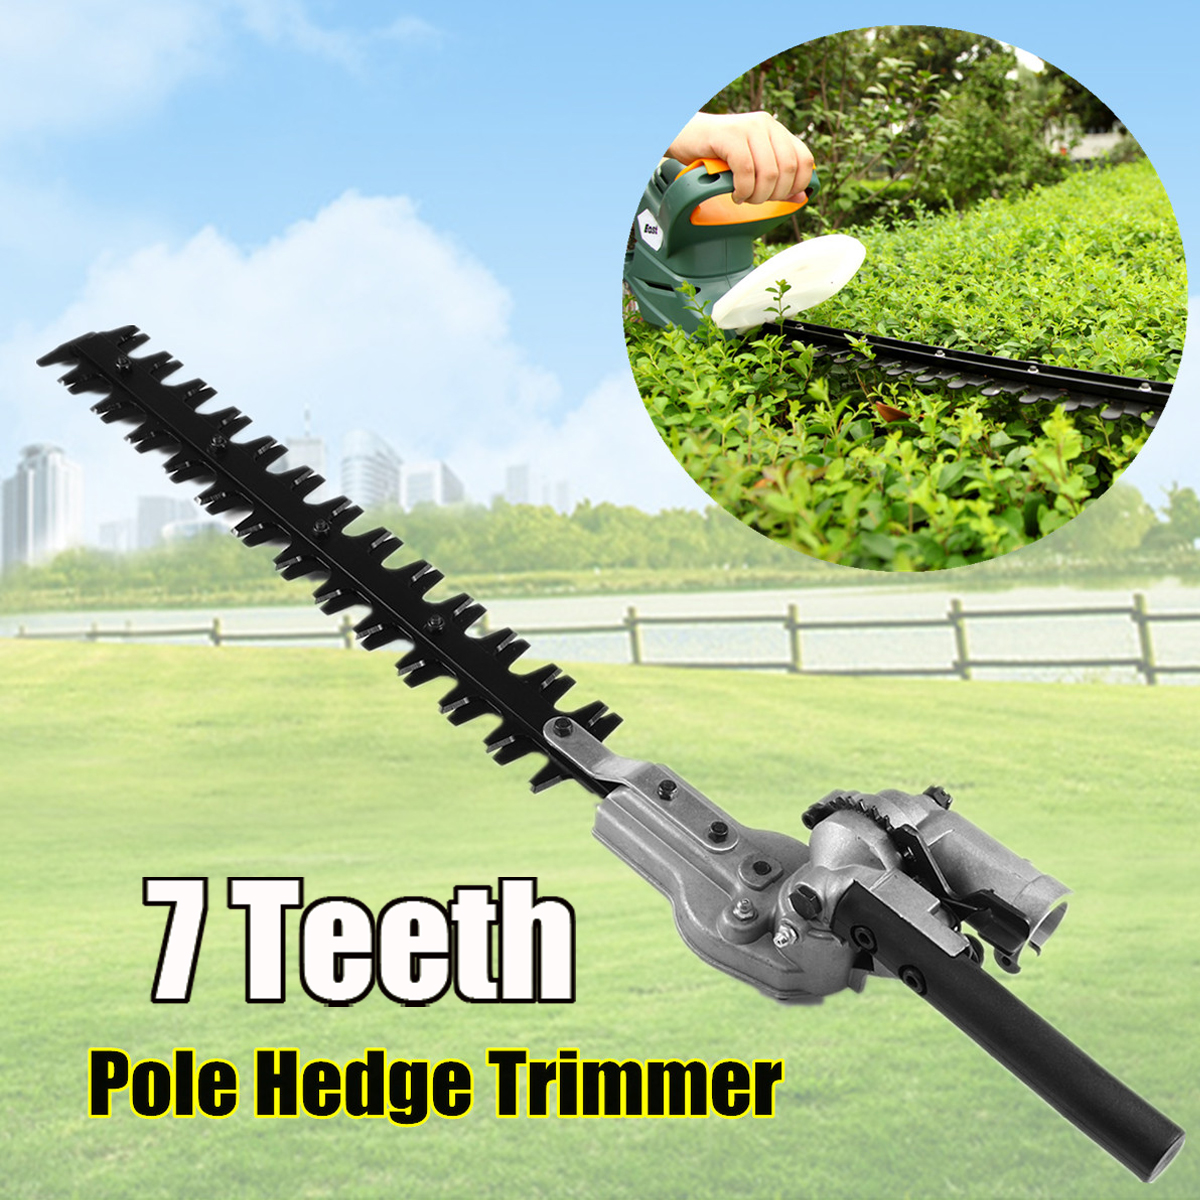 26mm-7-9Teeth-Hedge-Trimmer-Head-Pole-Chainsaw-Brush-Cutter-Replacement-Parts